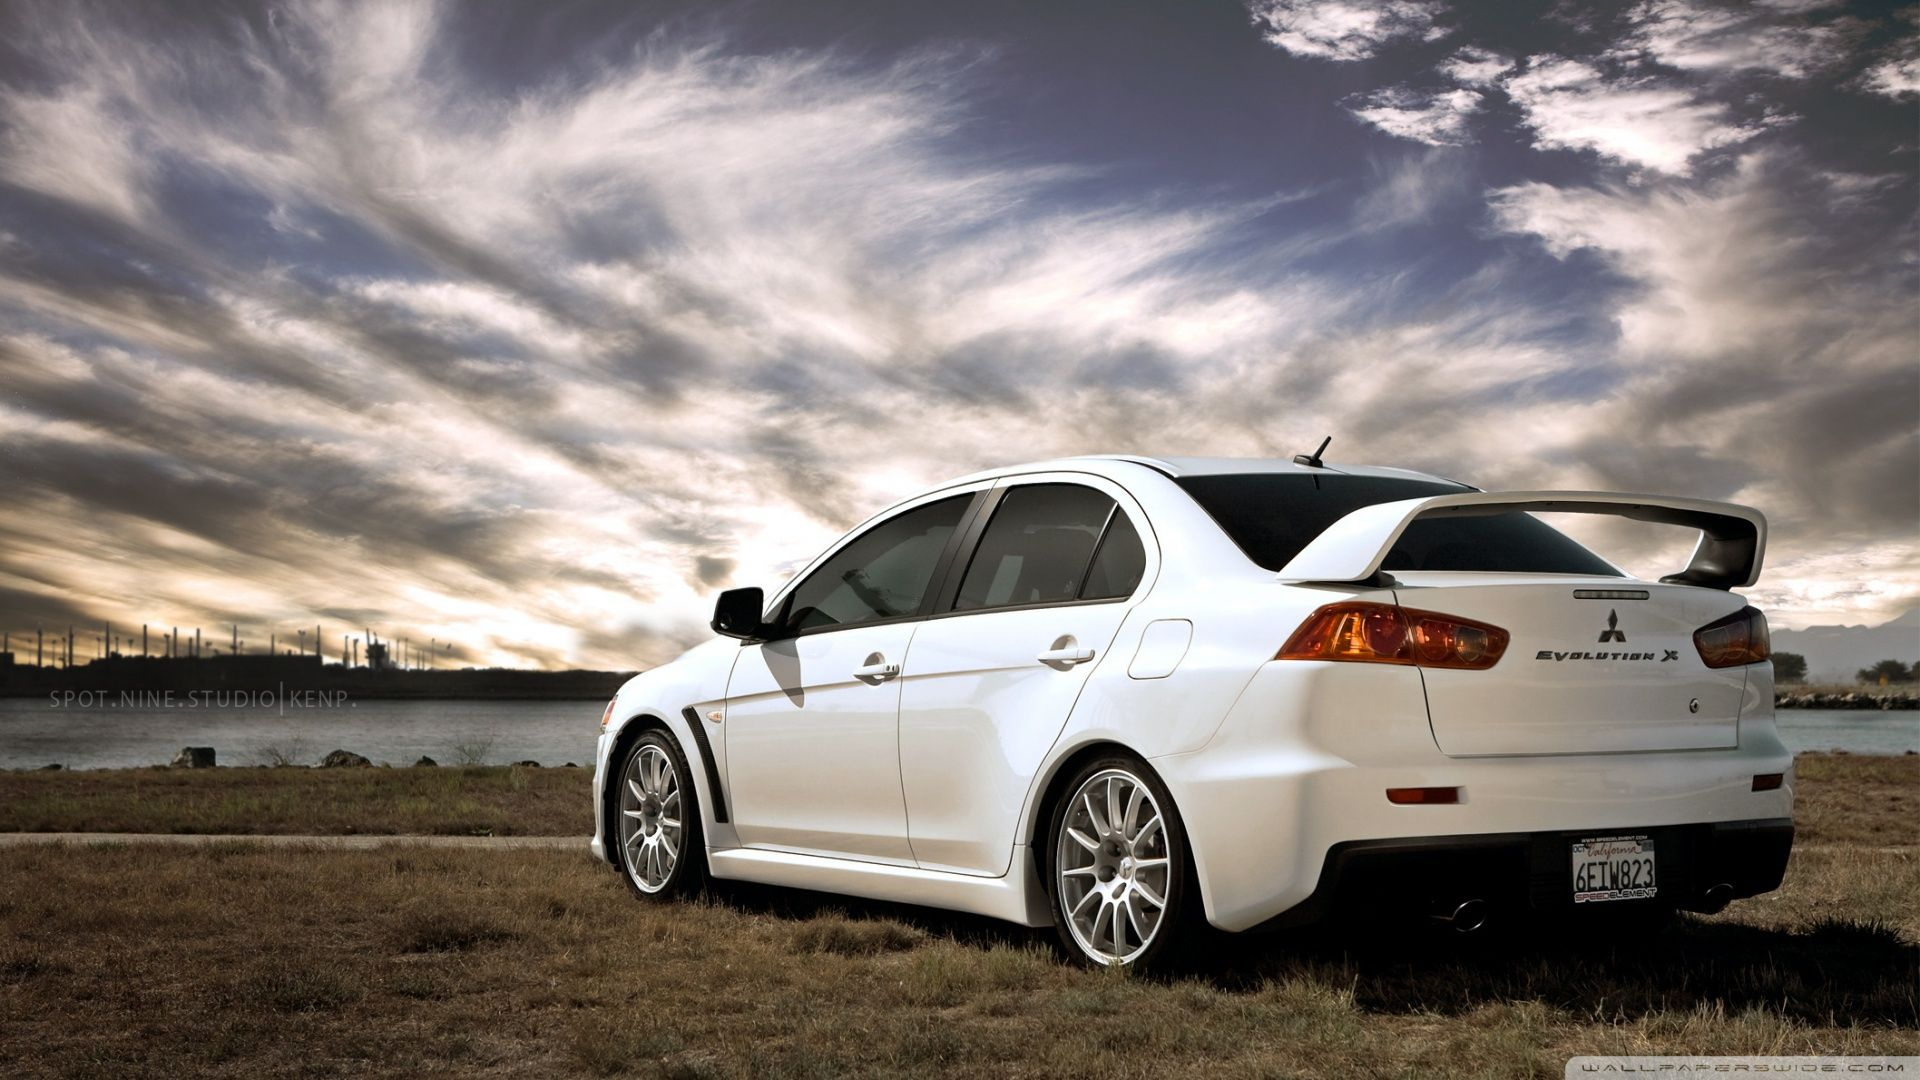 Evo 10 Wallpaper Mitsubishi Evolution X Hd Desktop Wallpaper Widescreen High